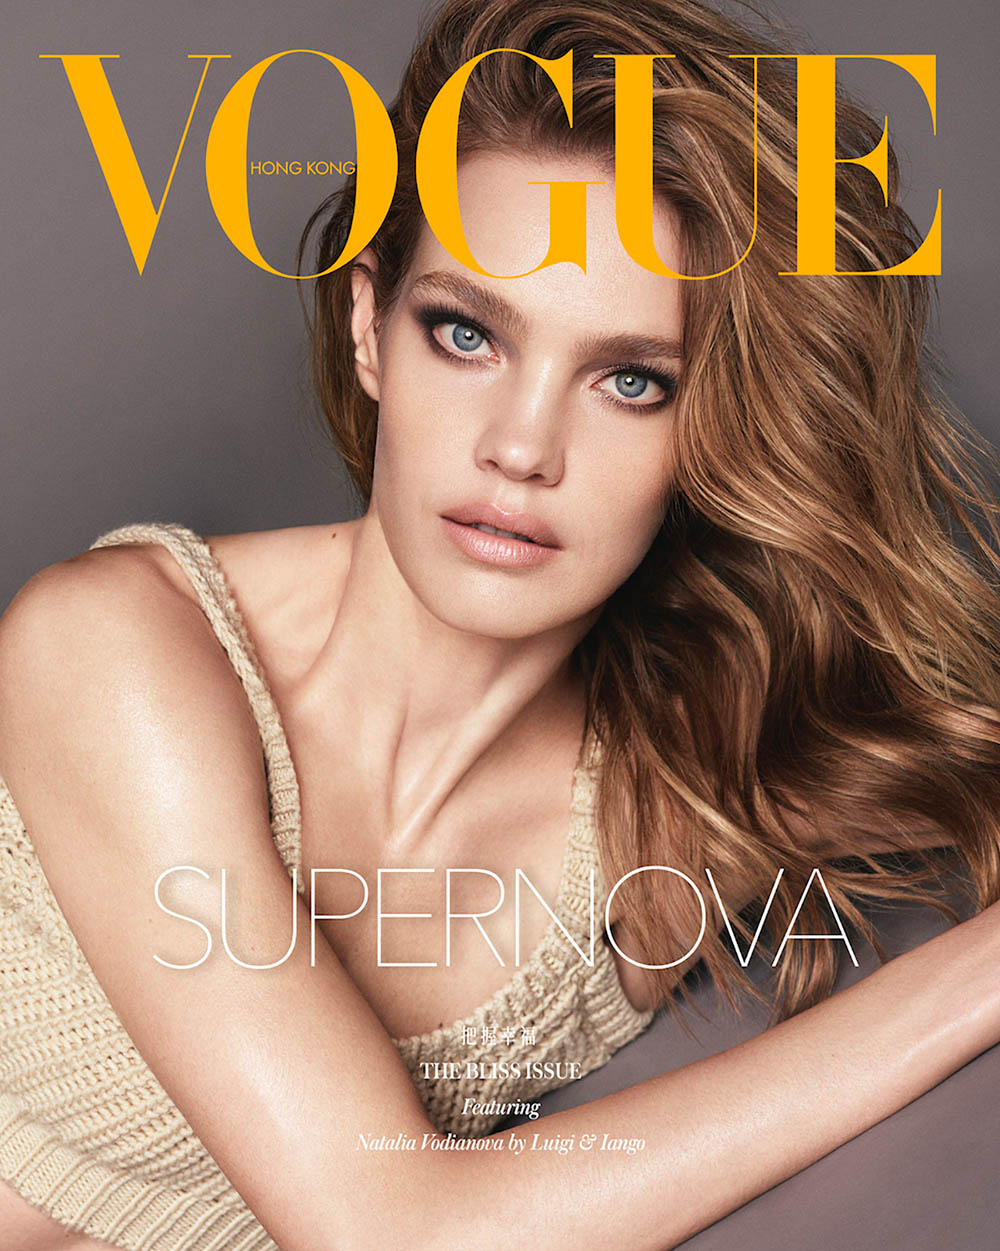 Natalia Vodianova covers Vogue Hong Kong Summer 2020 by Luigi & Iango